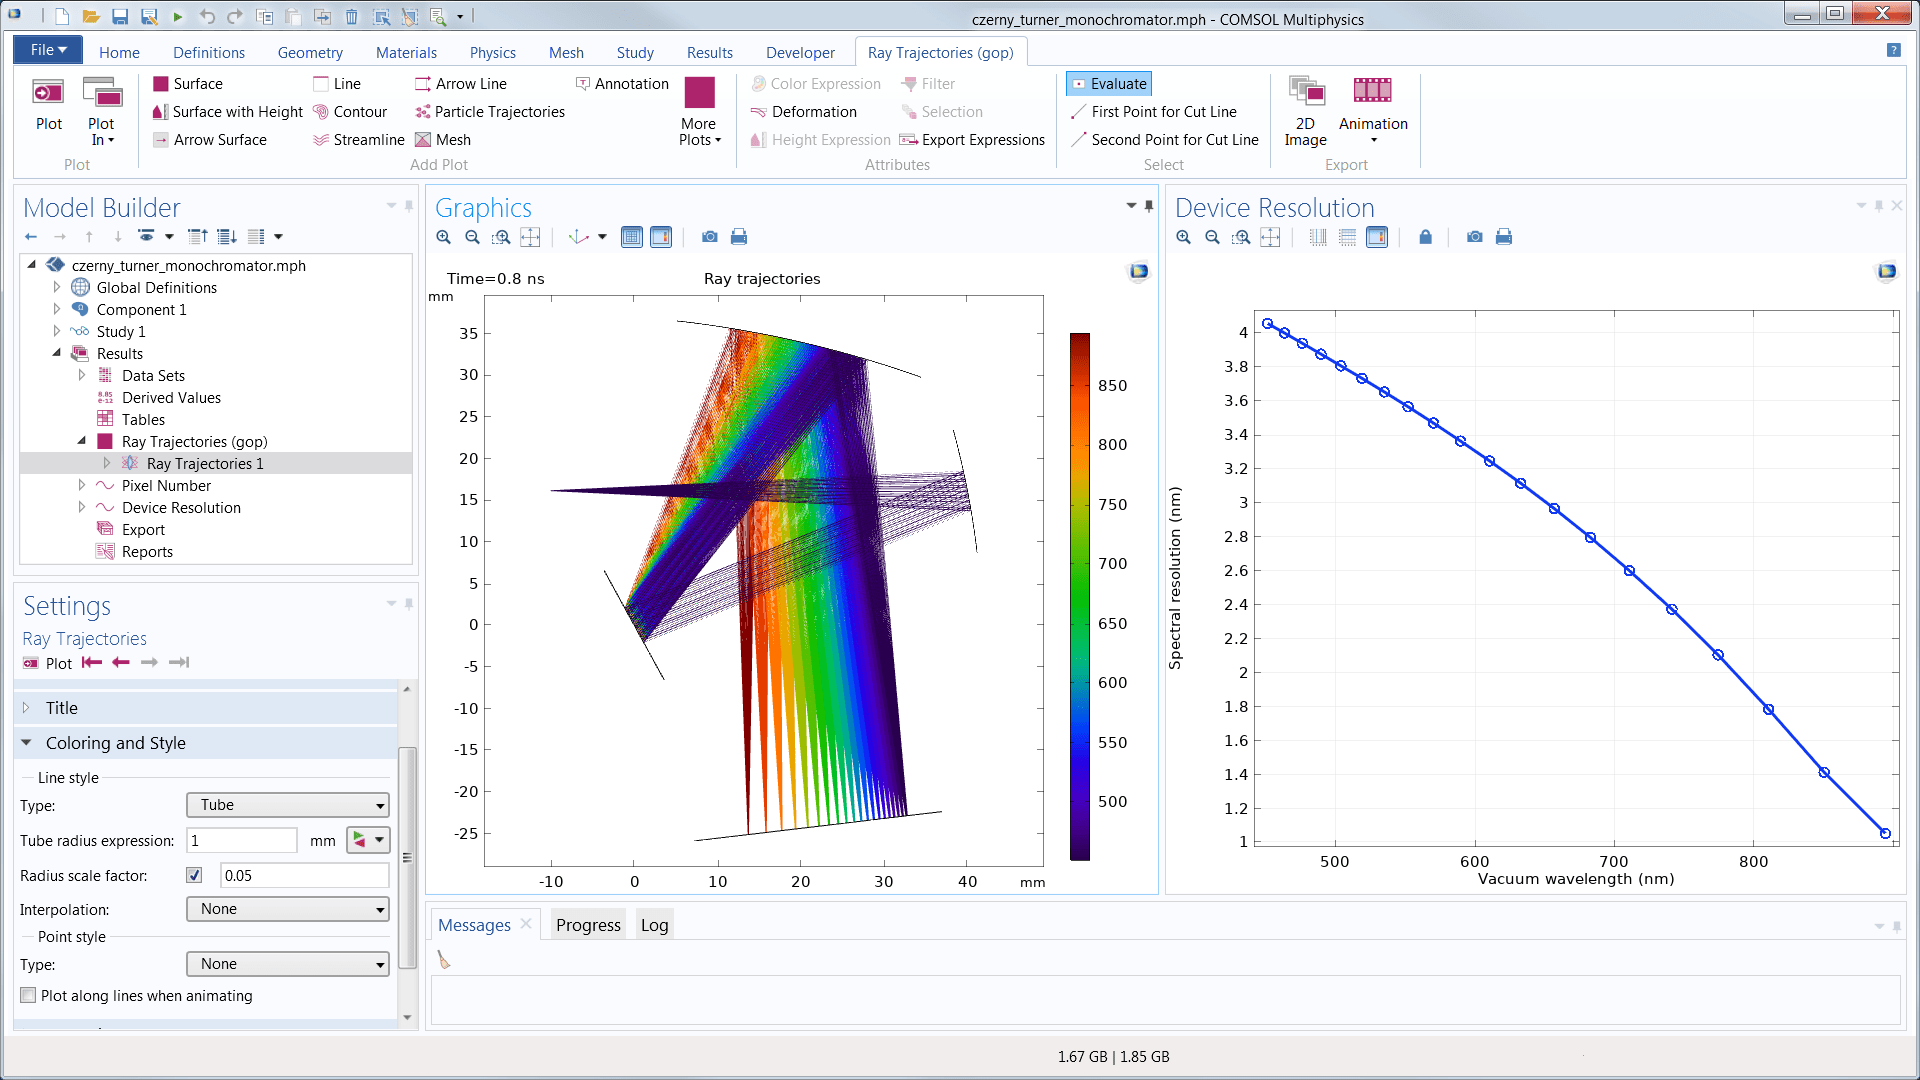 mirror ray diagram simulation volvo v70 wiring 1999 modeling software for tracing in optically large systems an image of the comsol multiphysics gui with a czerny turner spectrometer model open